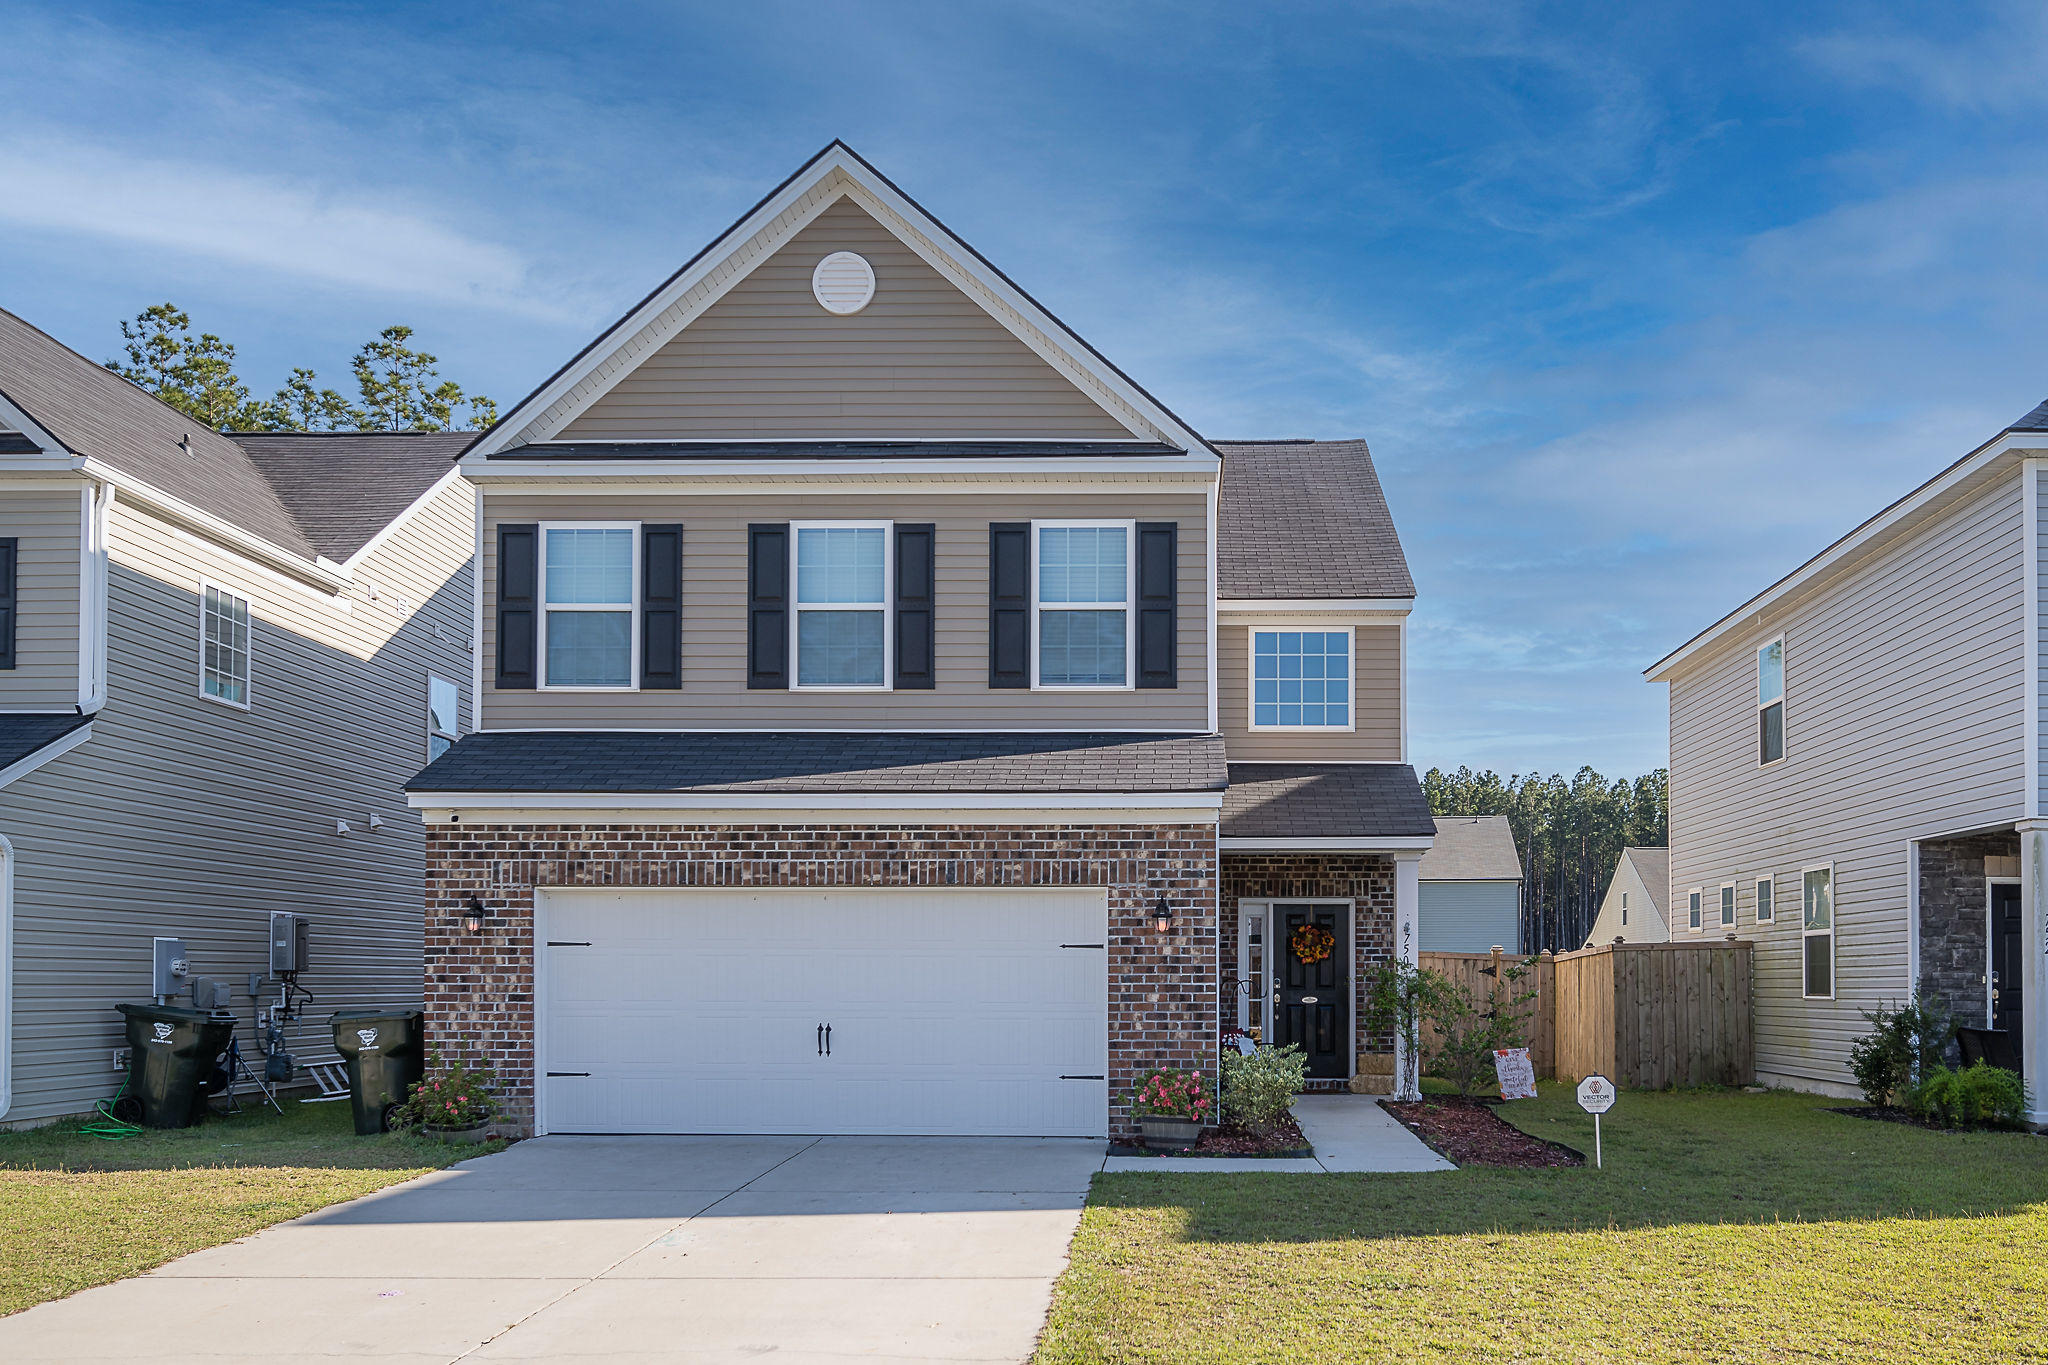 750 Redbud Lane Summerville, Sc 29486